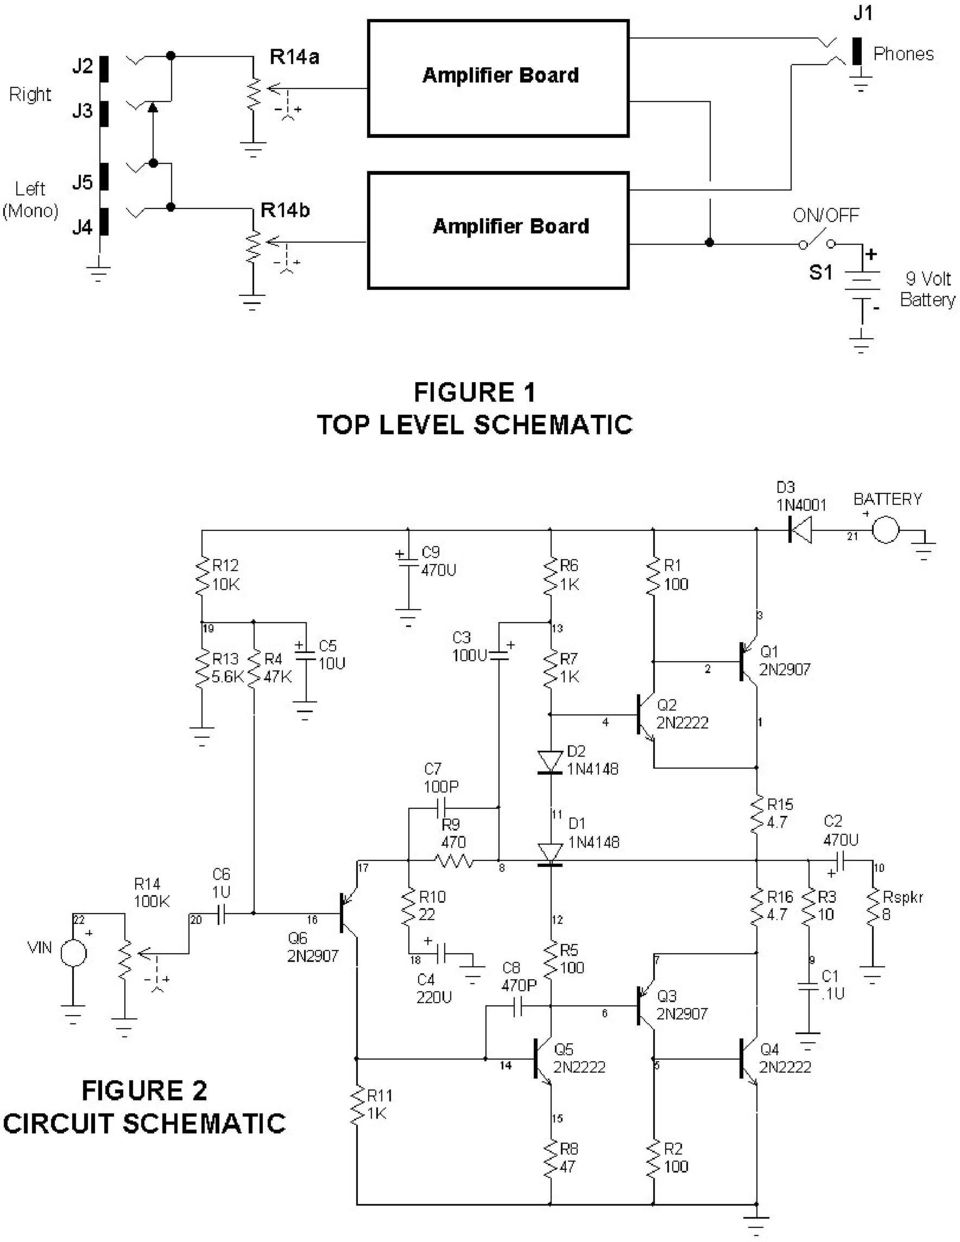 Build It A Portable Headphone Amplifier By Mark Amundson Pdf Frequency Modulationfm Amplifiercircuit Circuit Diagram 5